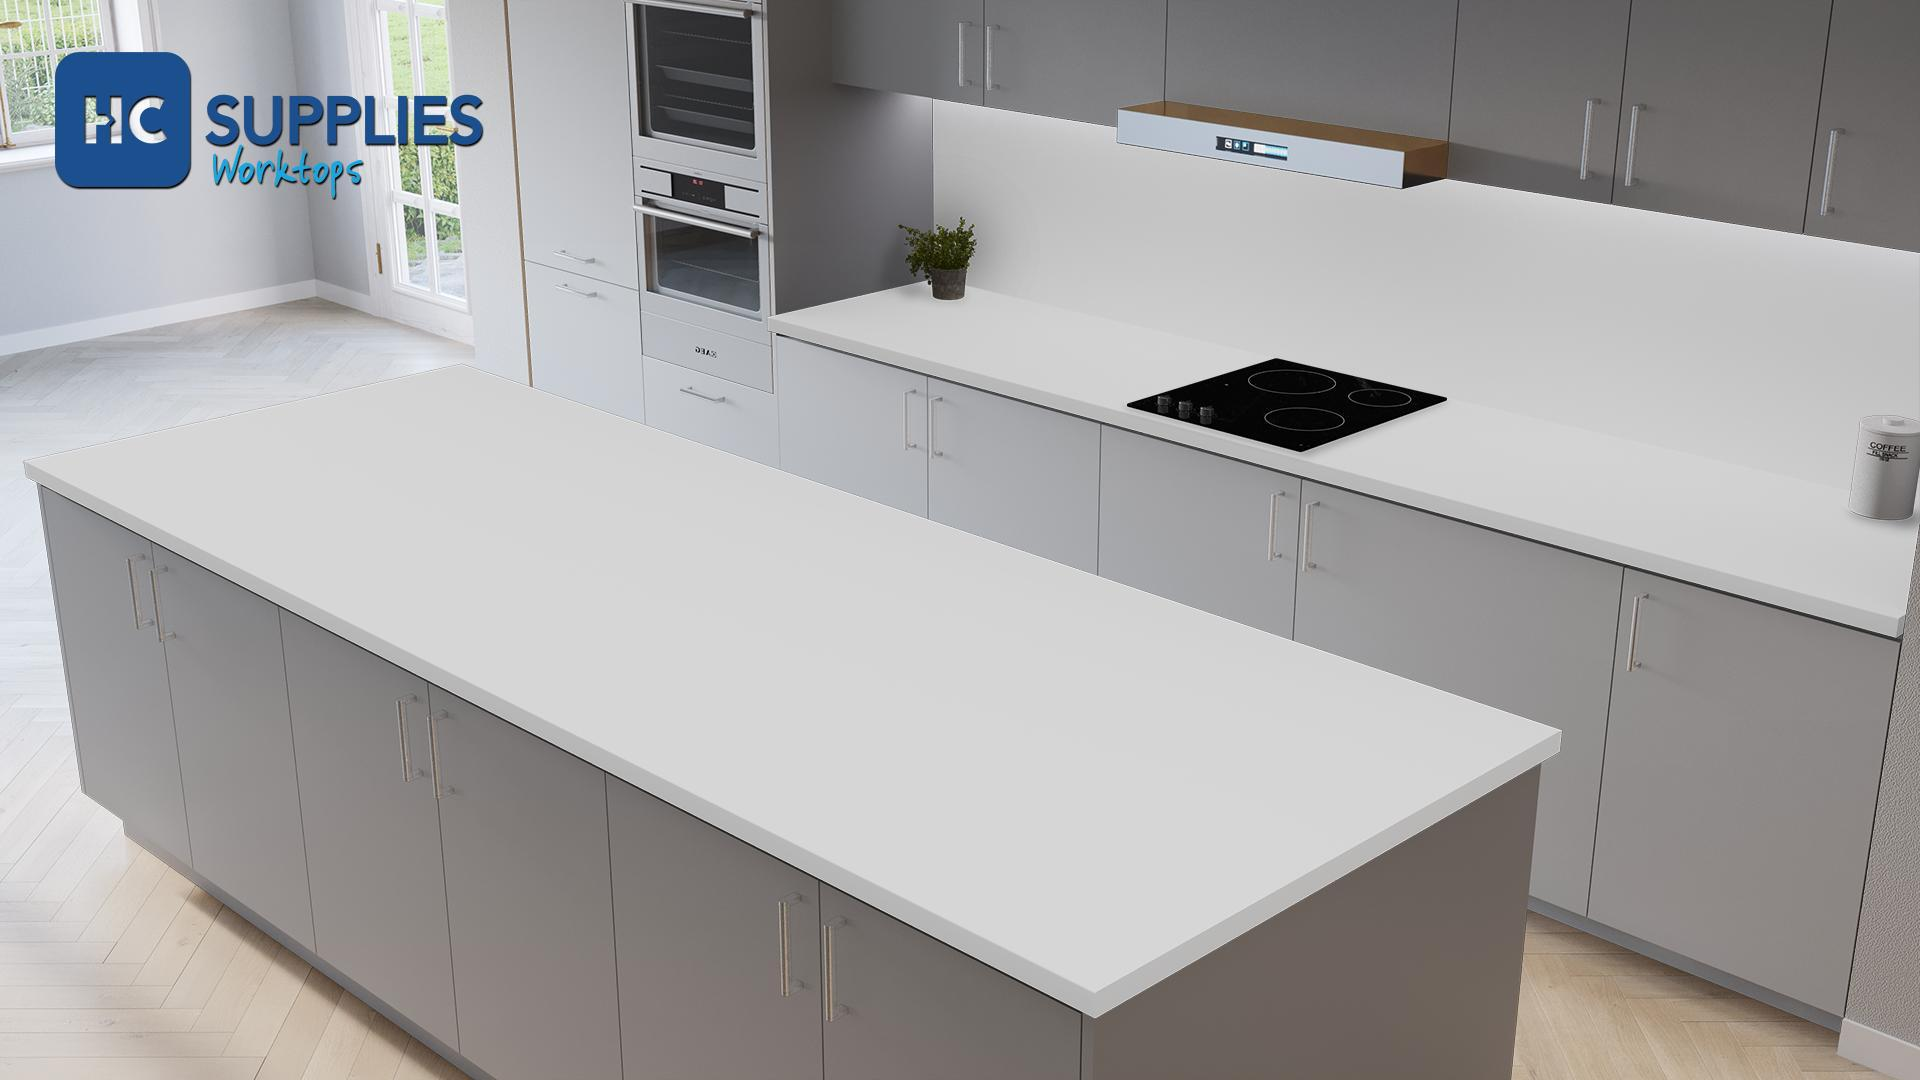 Kronodesign Slimline Snow White Super Matt Laminated Worktop